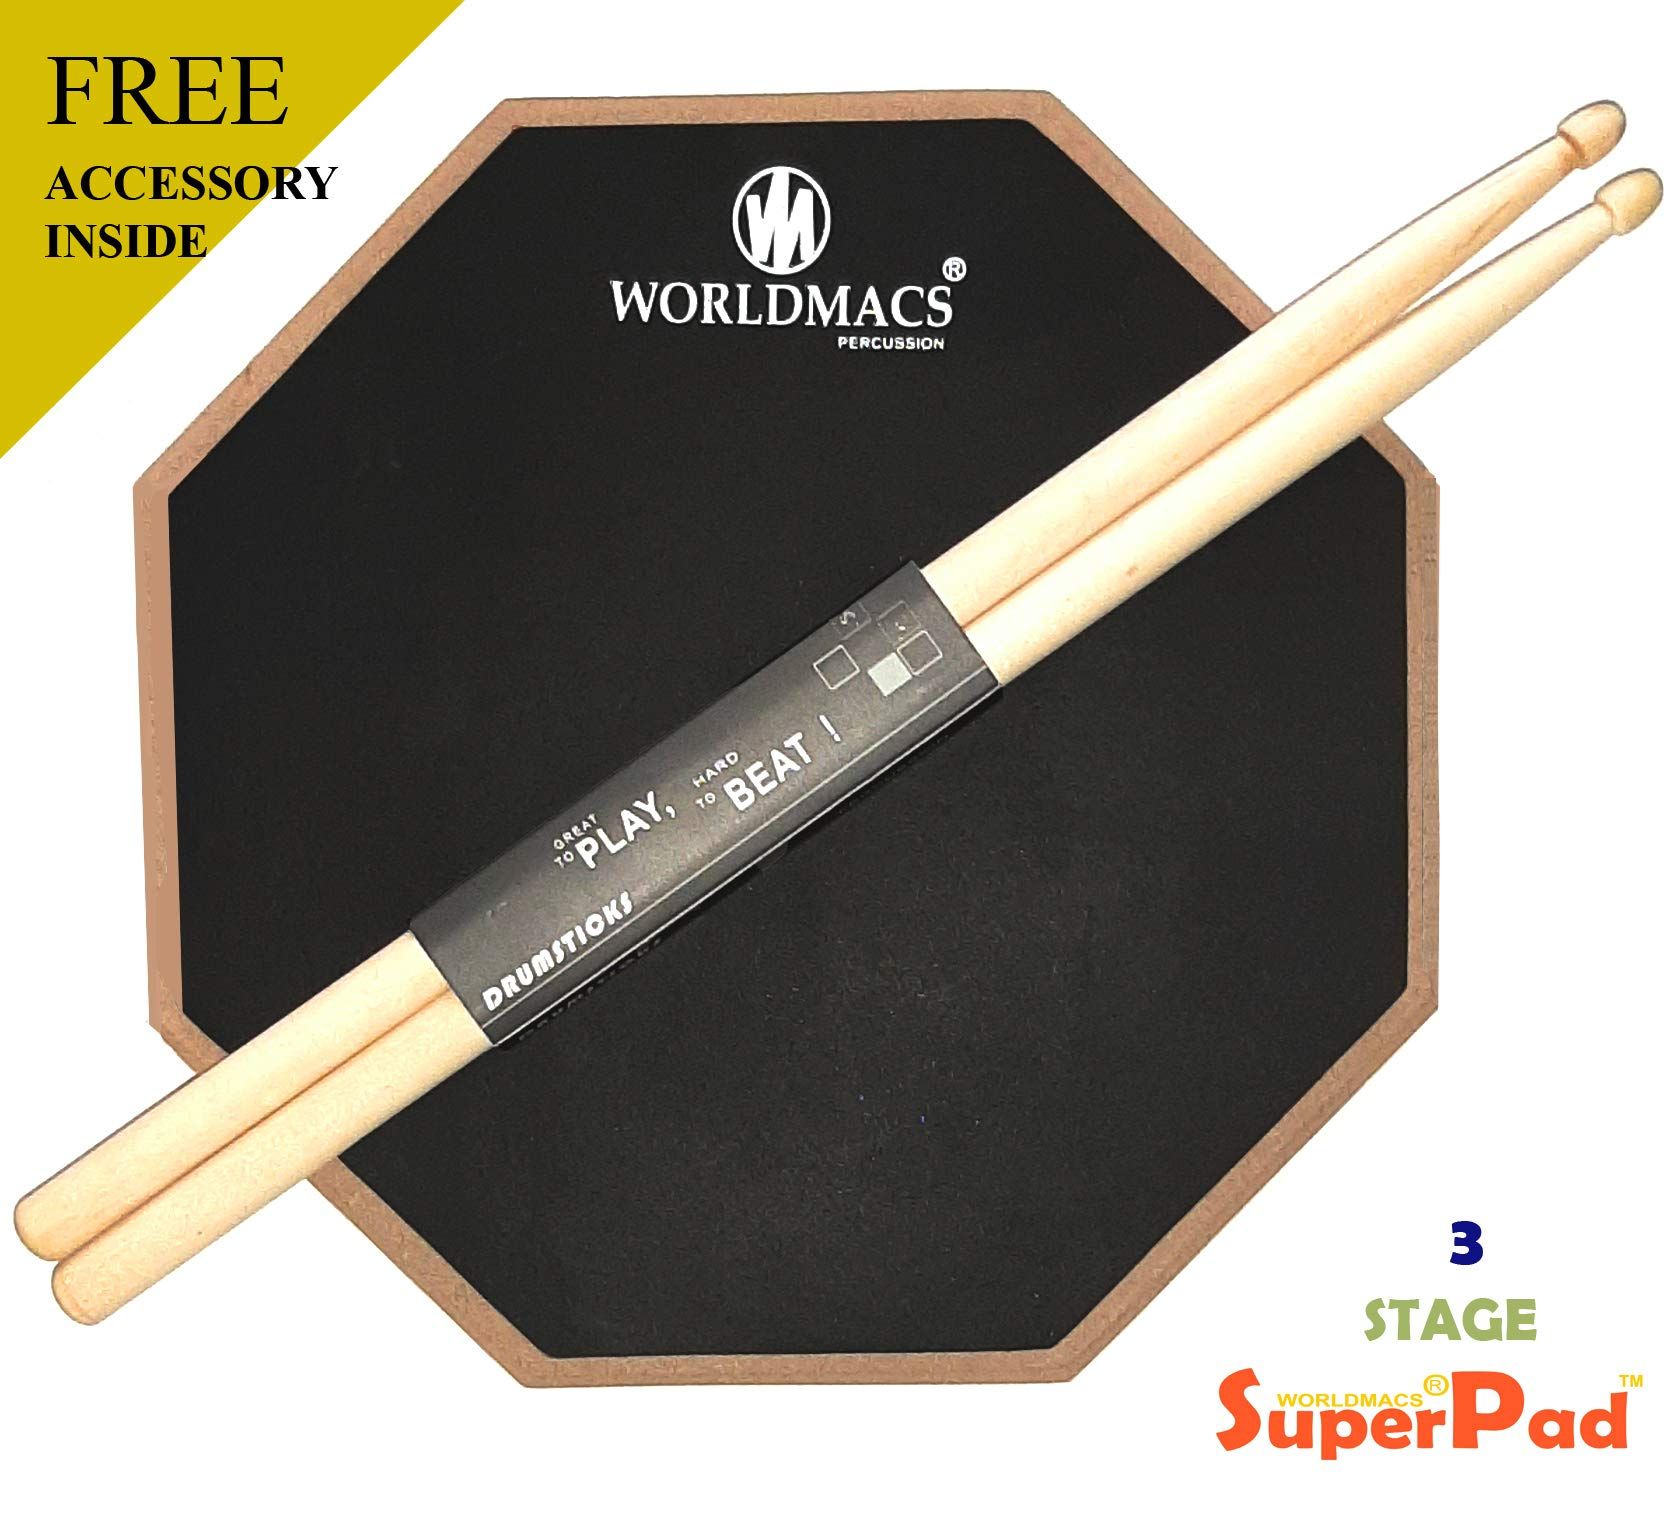 worldmacs 12'' Inches 2 Sided Drum Practice Pad + Bag + Drumsticks product image